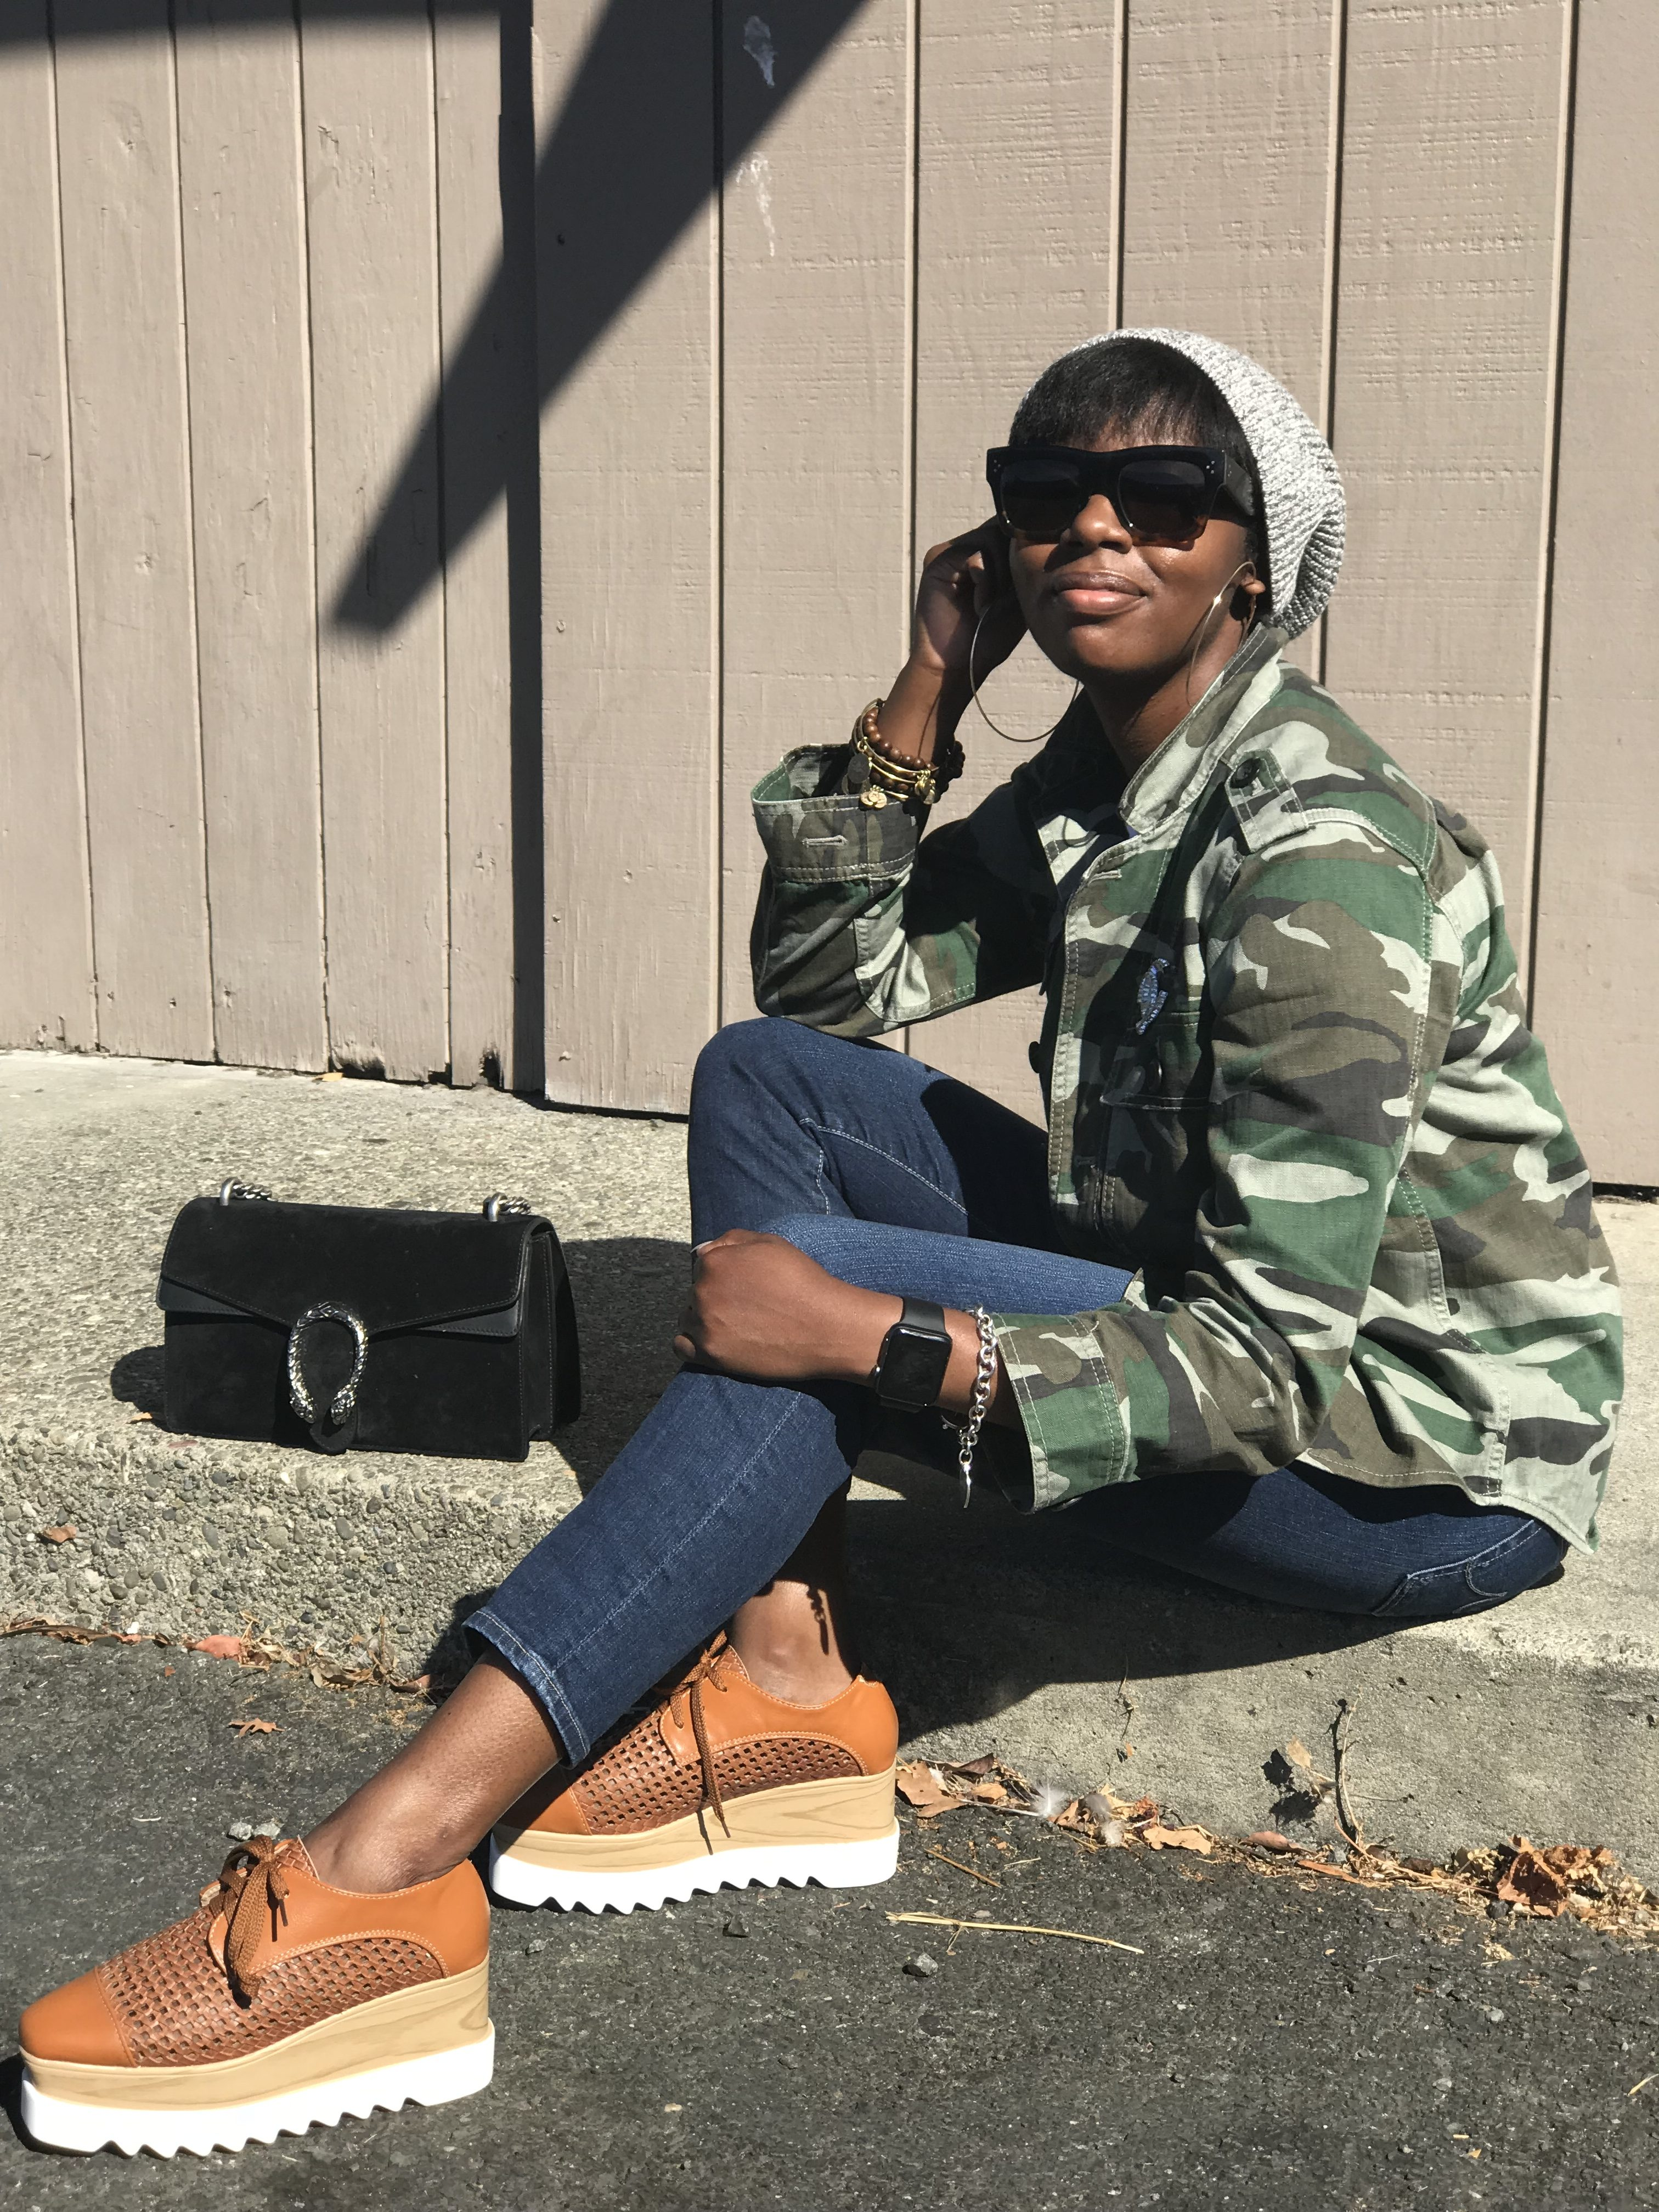 Jcrew Cotton Beanie Celine Sunglasses Liars & Lovers ASOS Extra Large Gold Hoop Earrings Jcrew Camouflage Camo Utility Shirt Jacket AG The Stilt Cropped Jeans Stella McCartney Elyse Woven Platform Sneakers Gucci Dionysus Black Suede Shoulder Bag Chanel Brooch San Francisco SF Bay Area California Fashion Style Blog Blogger